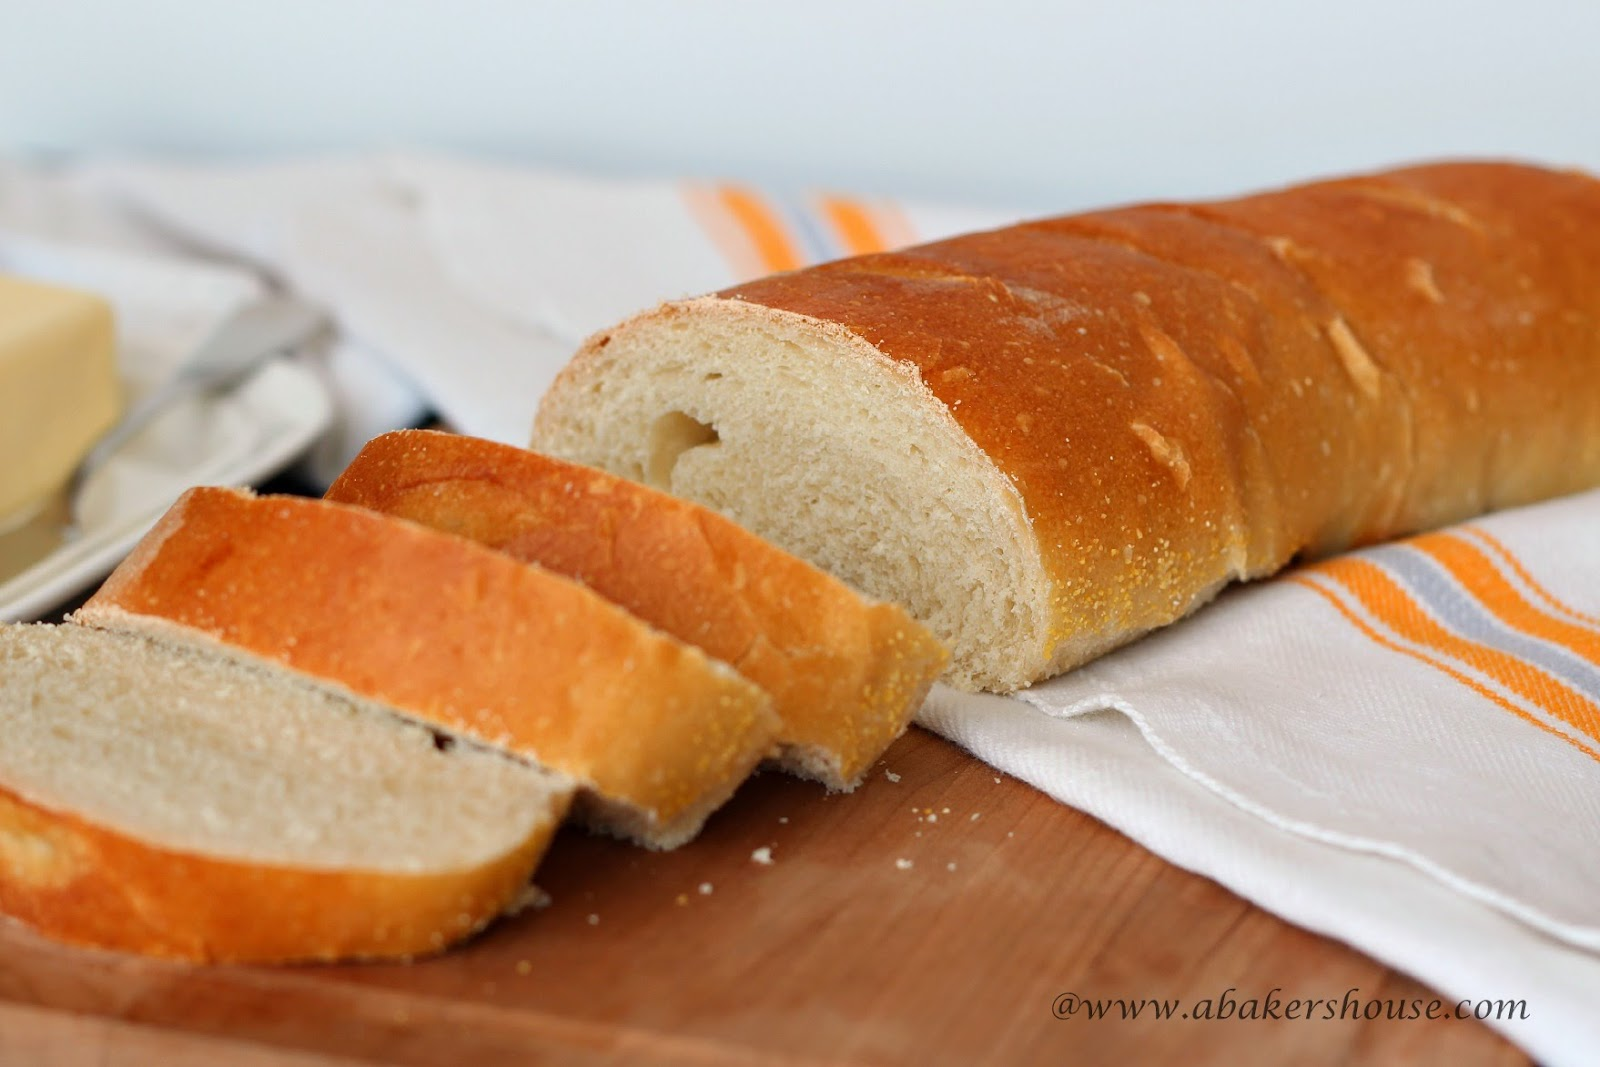 Easy French Bread from www.abakershouse.com